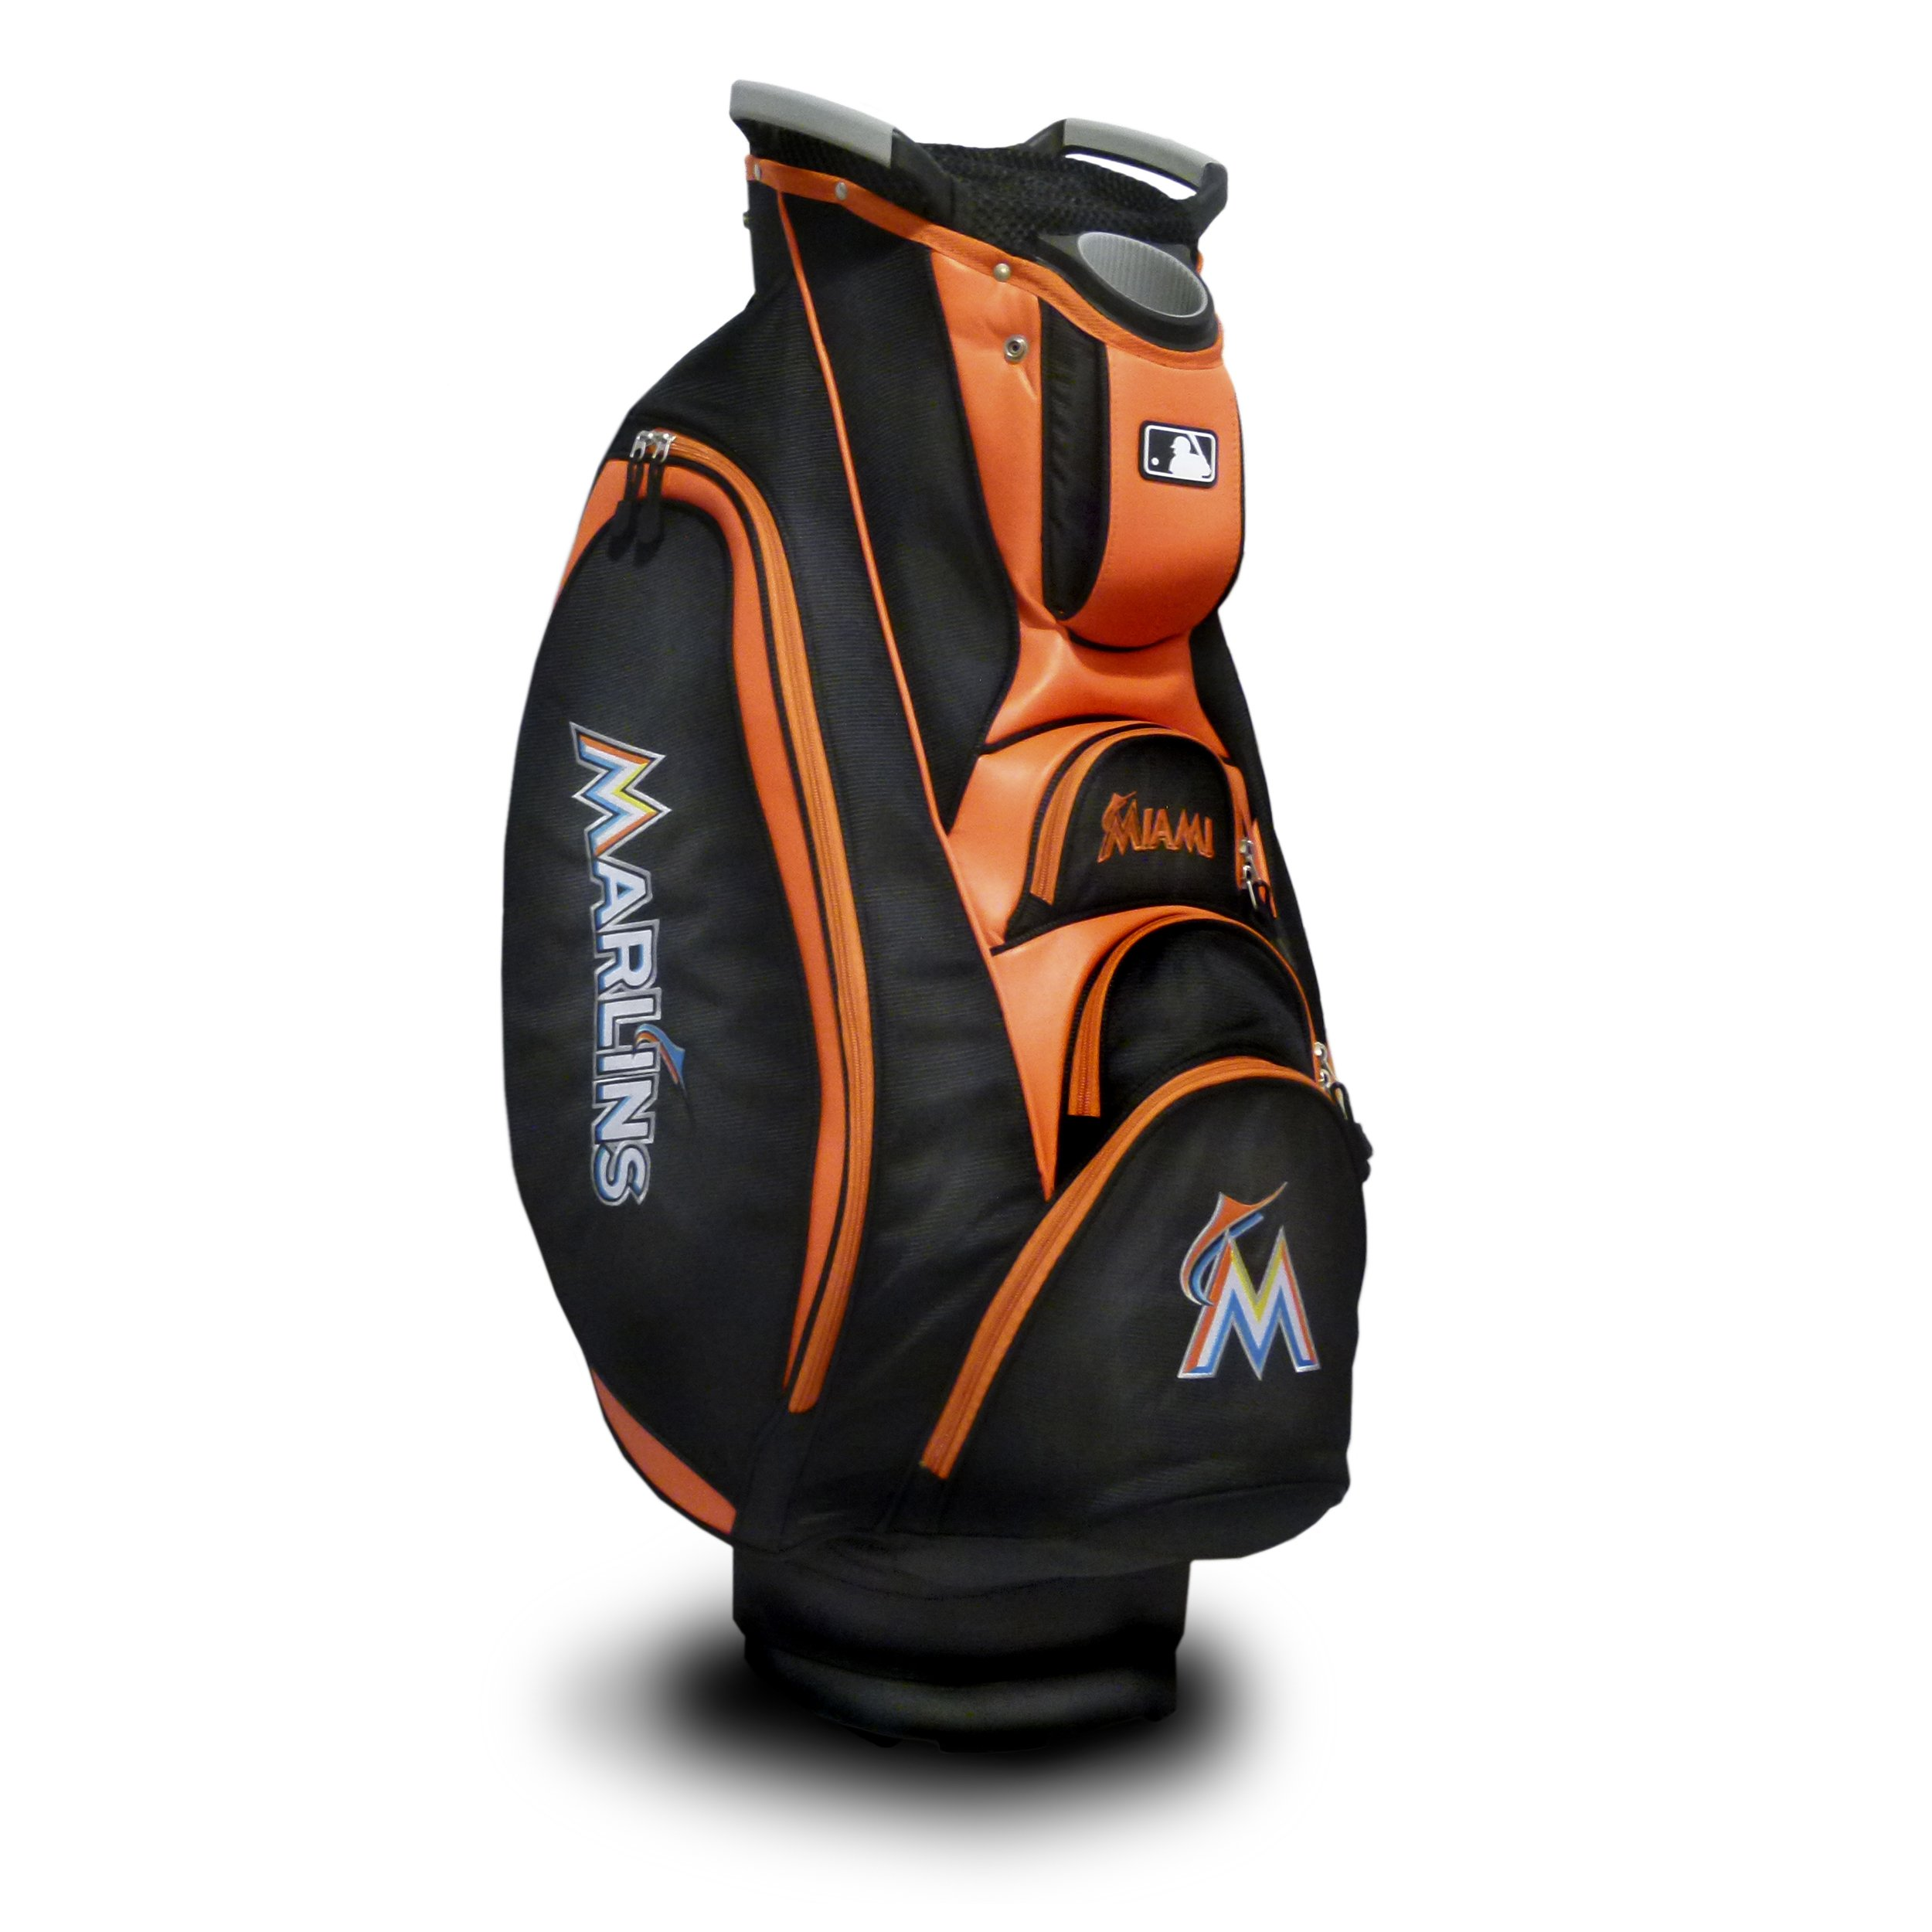 Team Golf MLB Miami Marlins Victory Golf Cart Bag, 10-way Top with Integrated Dual Handle & External Putter Well, Cooler Pocket, Padded Strap, Umbrella Holder & Removable Rain Hood